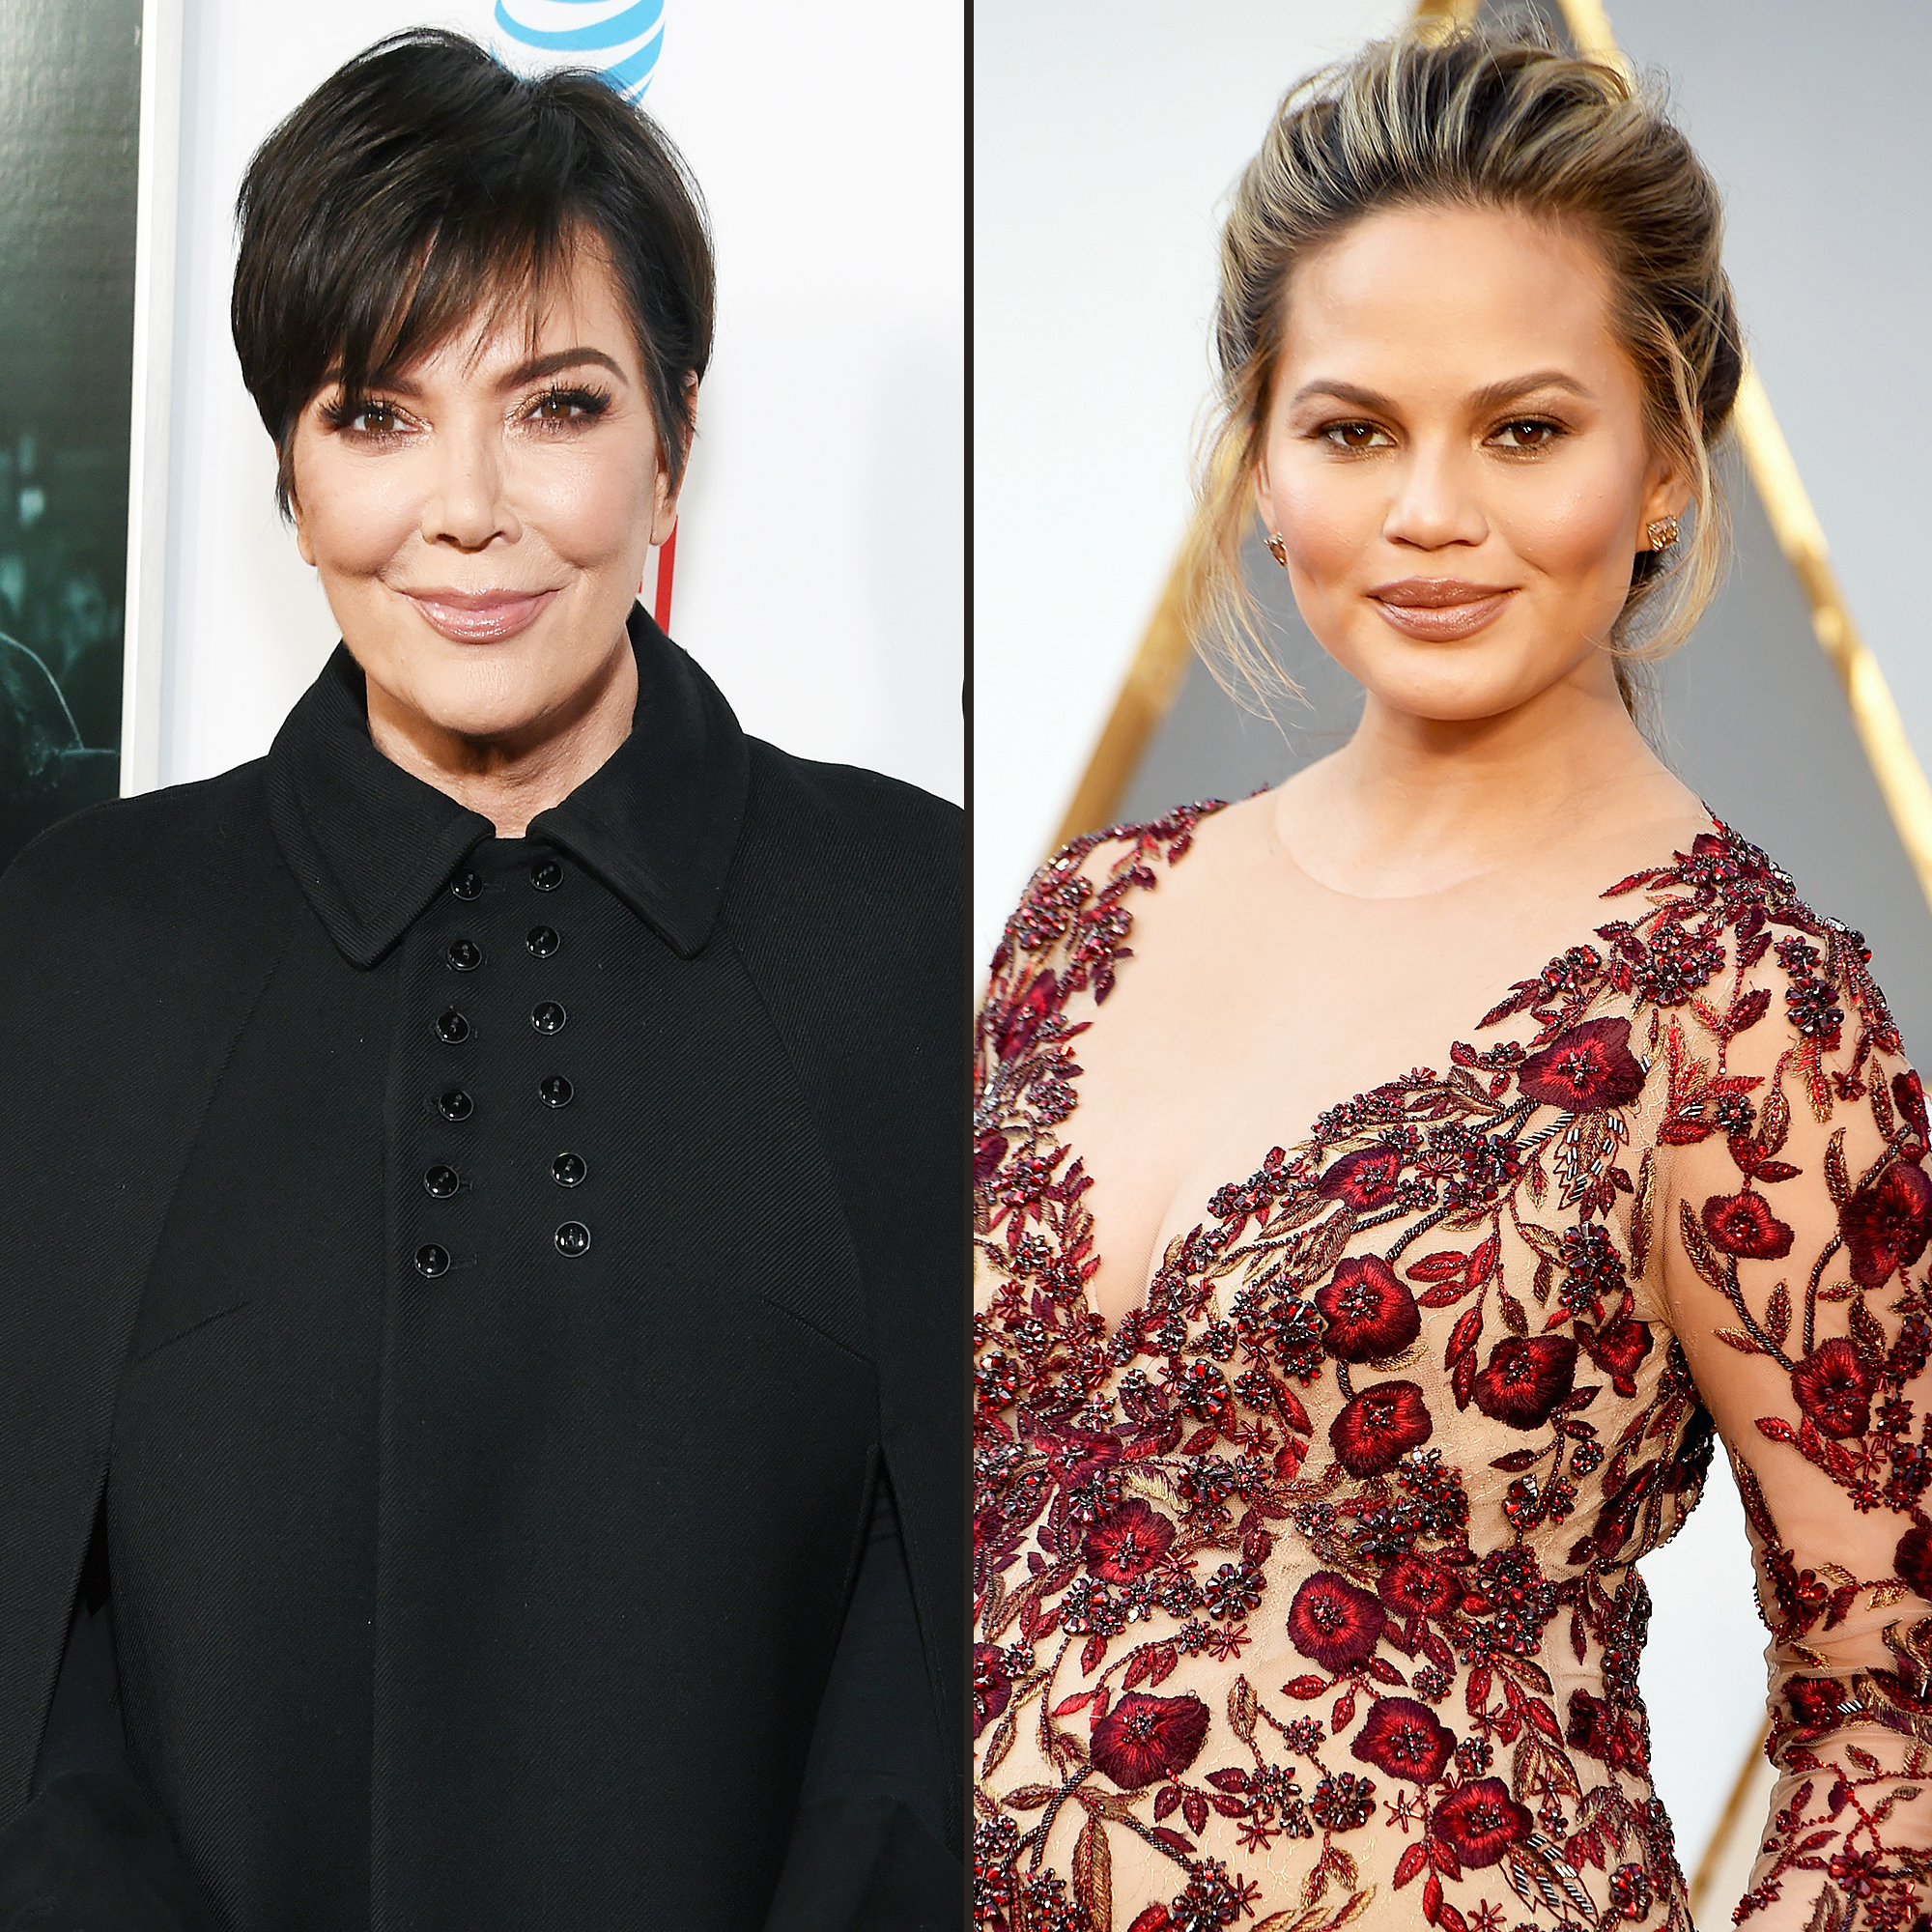 Kris Jenner Falls Into Chrissy Teigen's Table and Breaks It